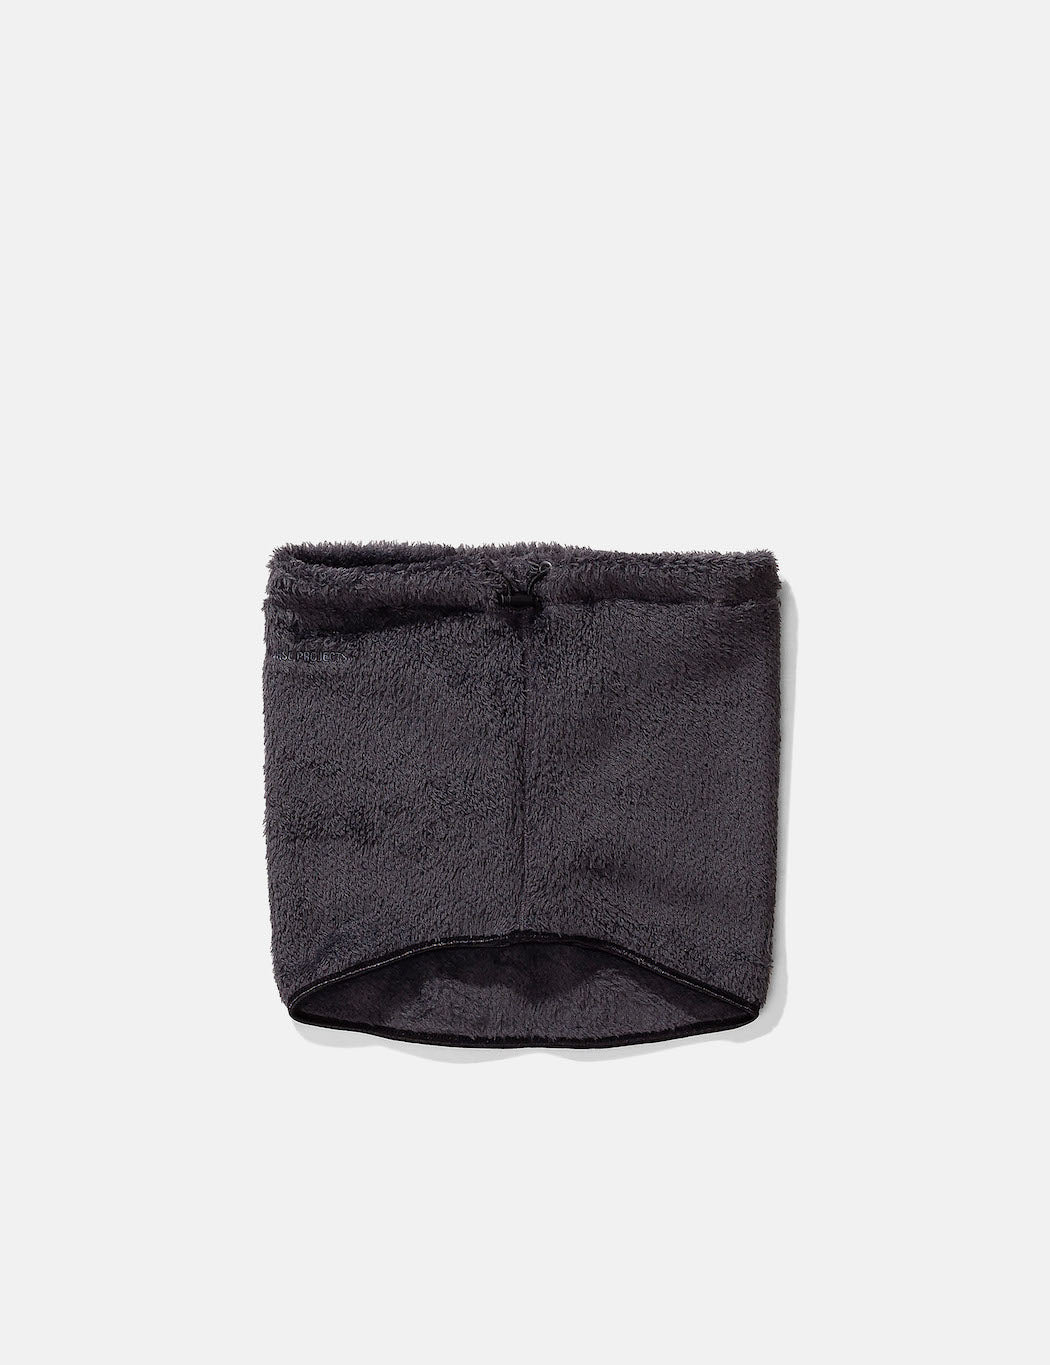 Norse Projects Fleece Neck Warmer - Slate Grey | URBAN EXCESS.